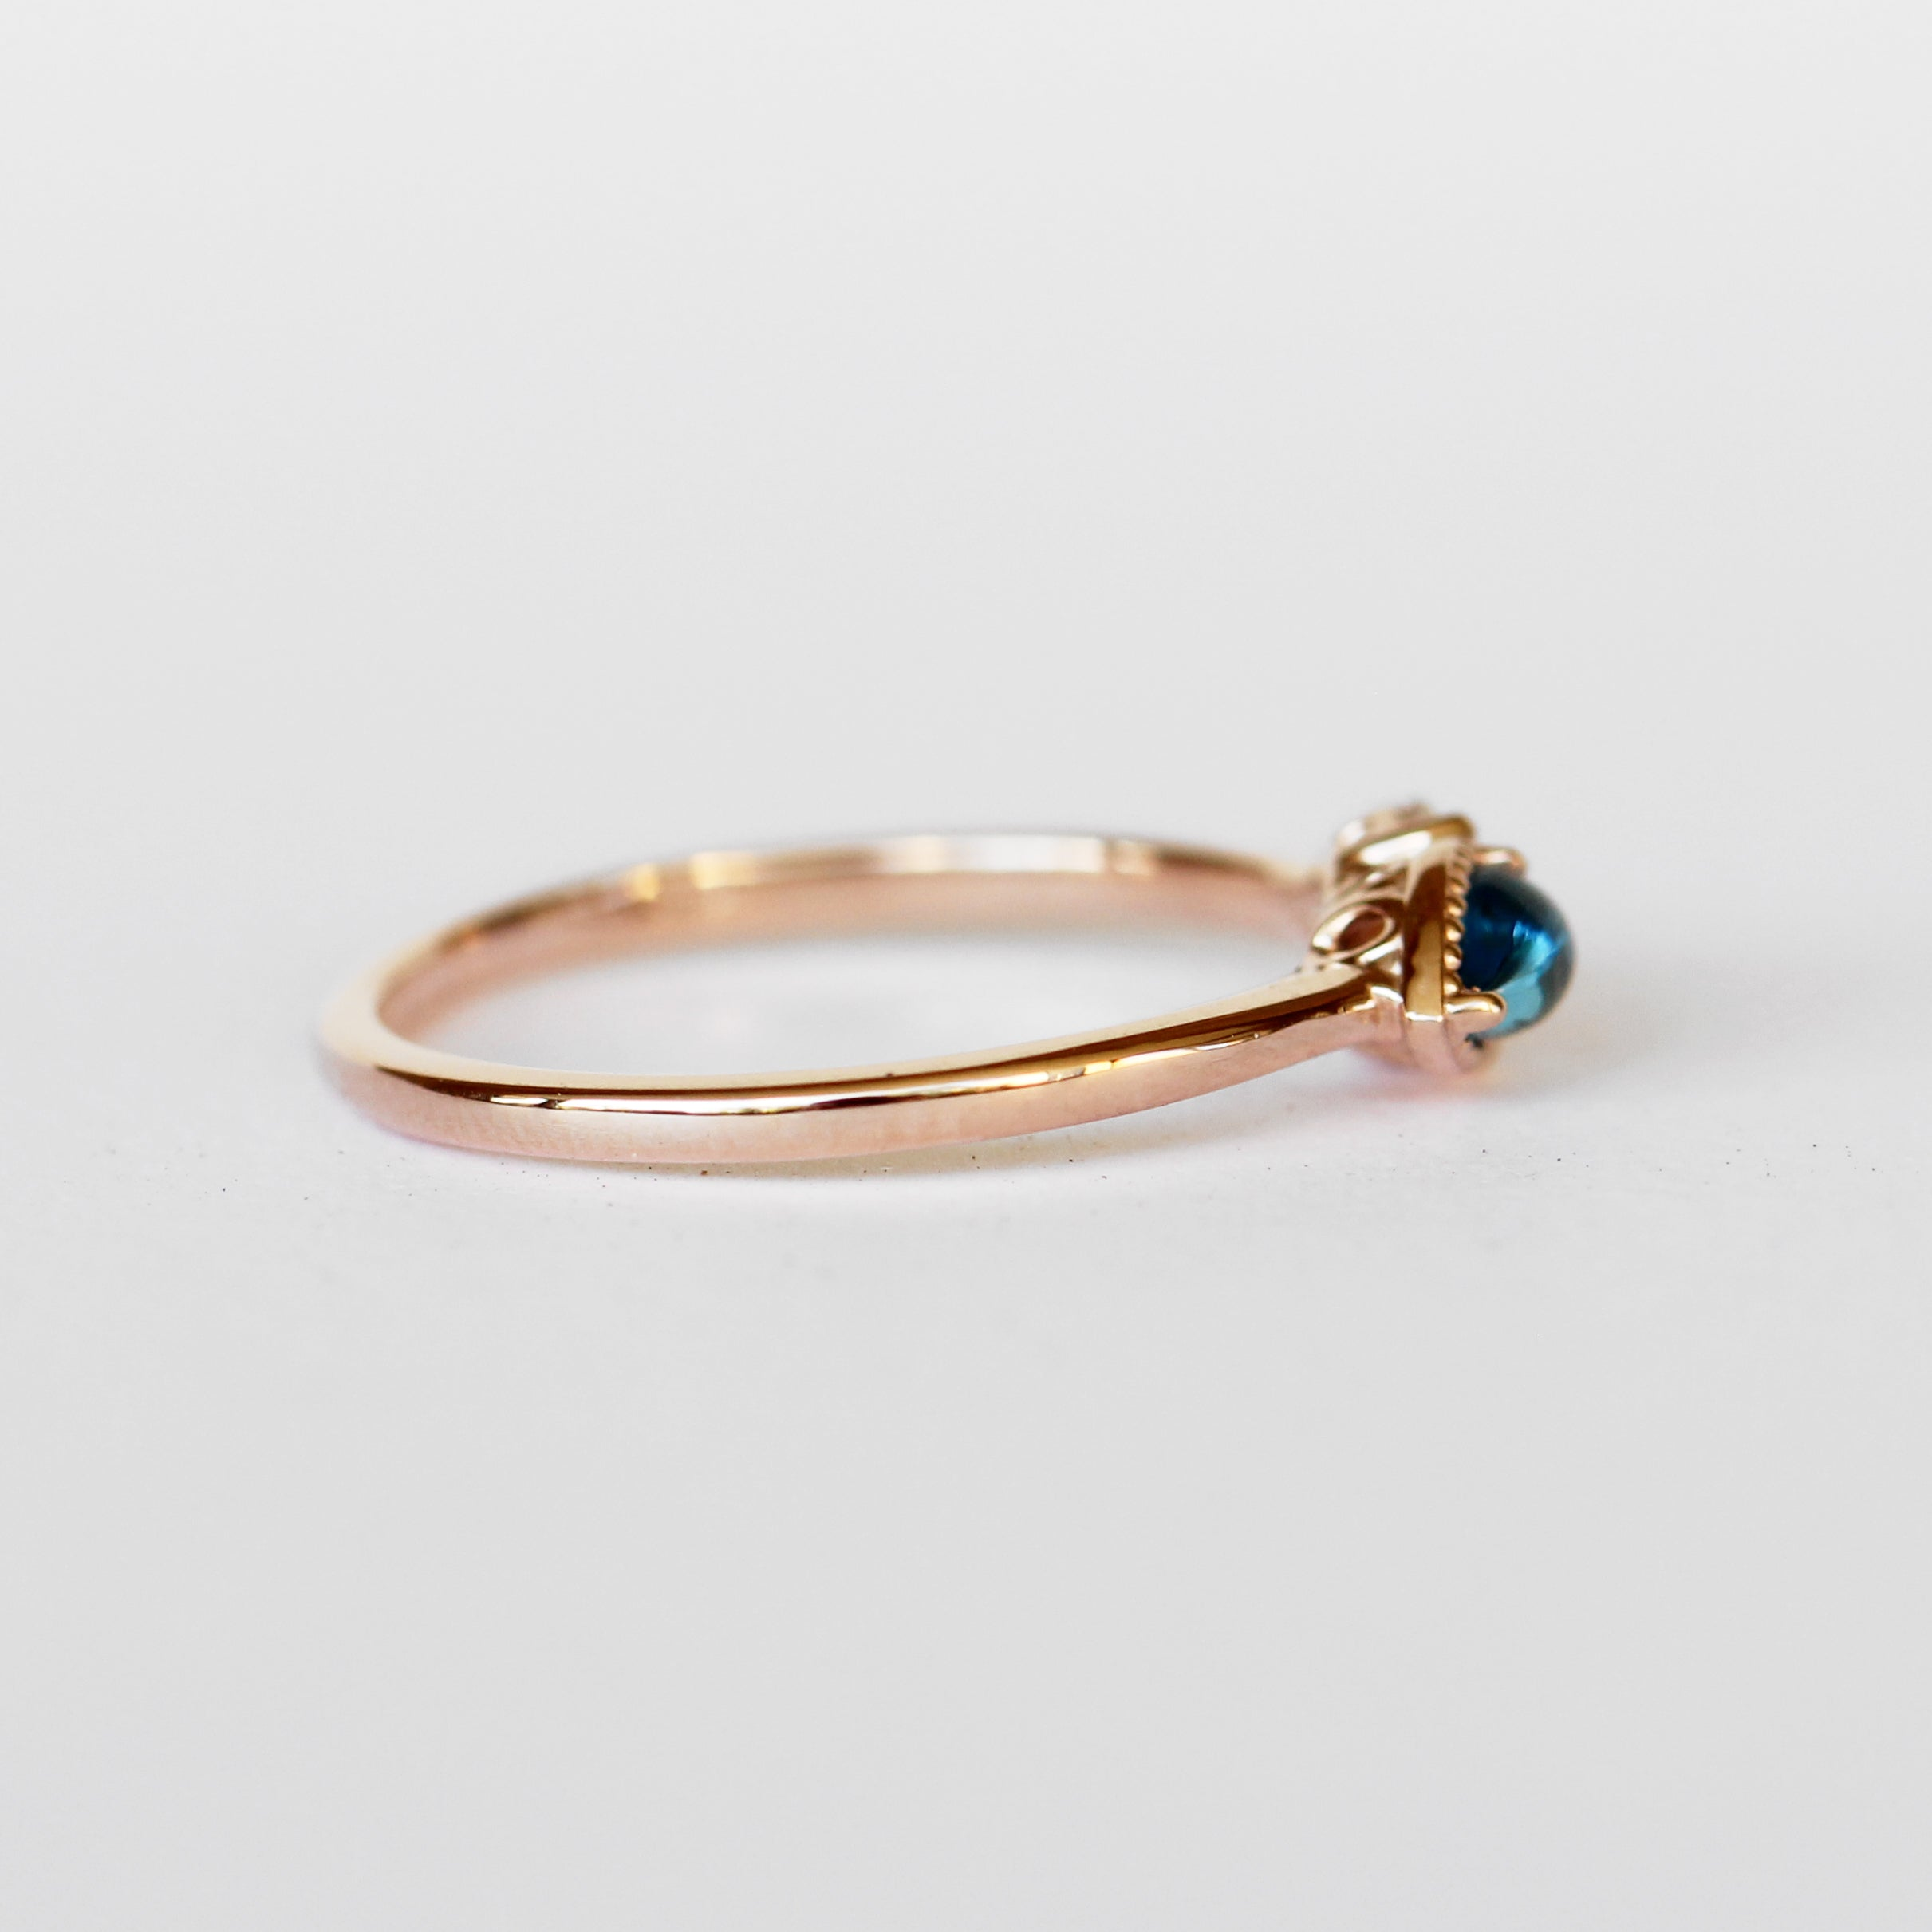 Ariana Ring with Sapphire Marquise + London Blue Topaz Pear in 10k Rose Gold - Ready to Size and Ship - Celestial Diamonds ® by Midwinter Co.